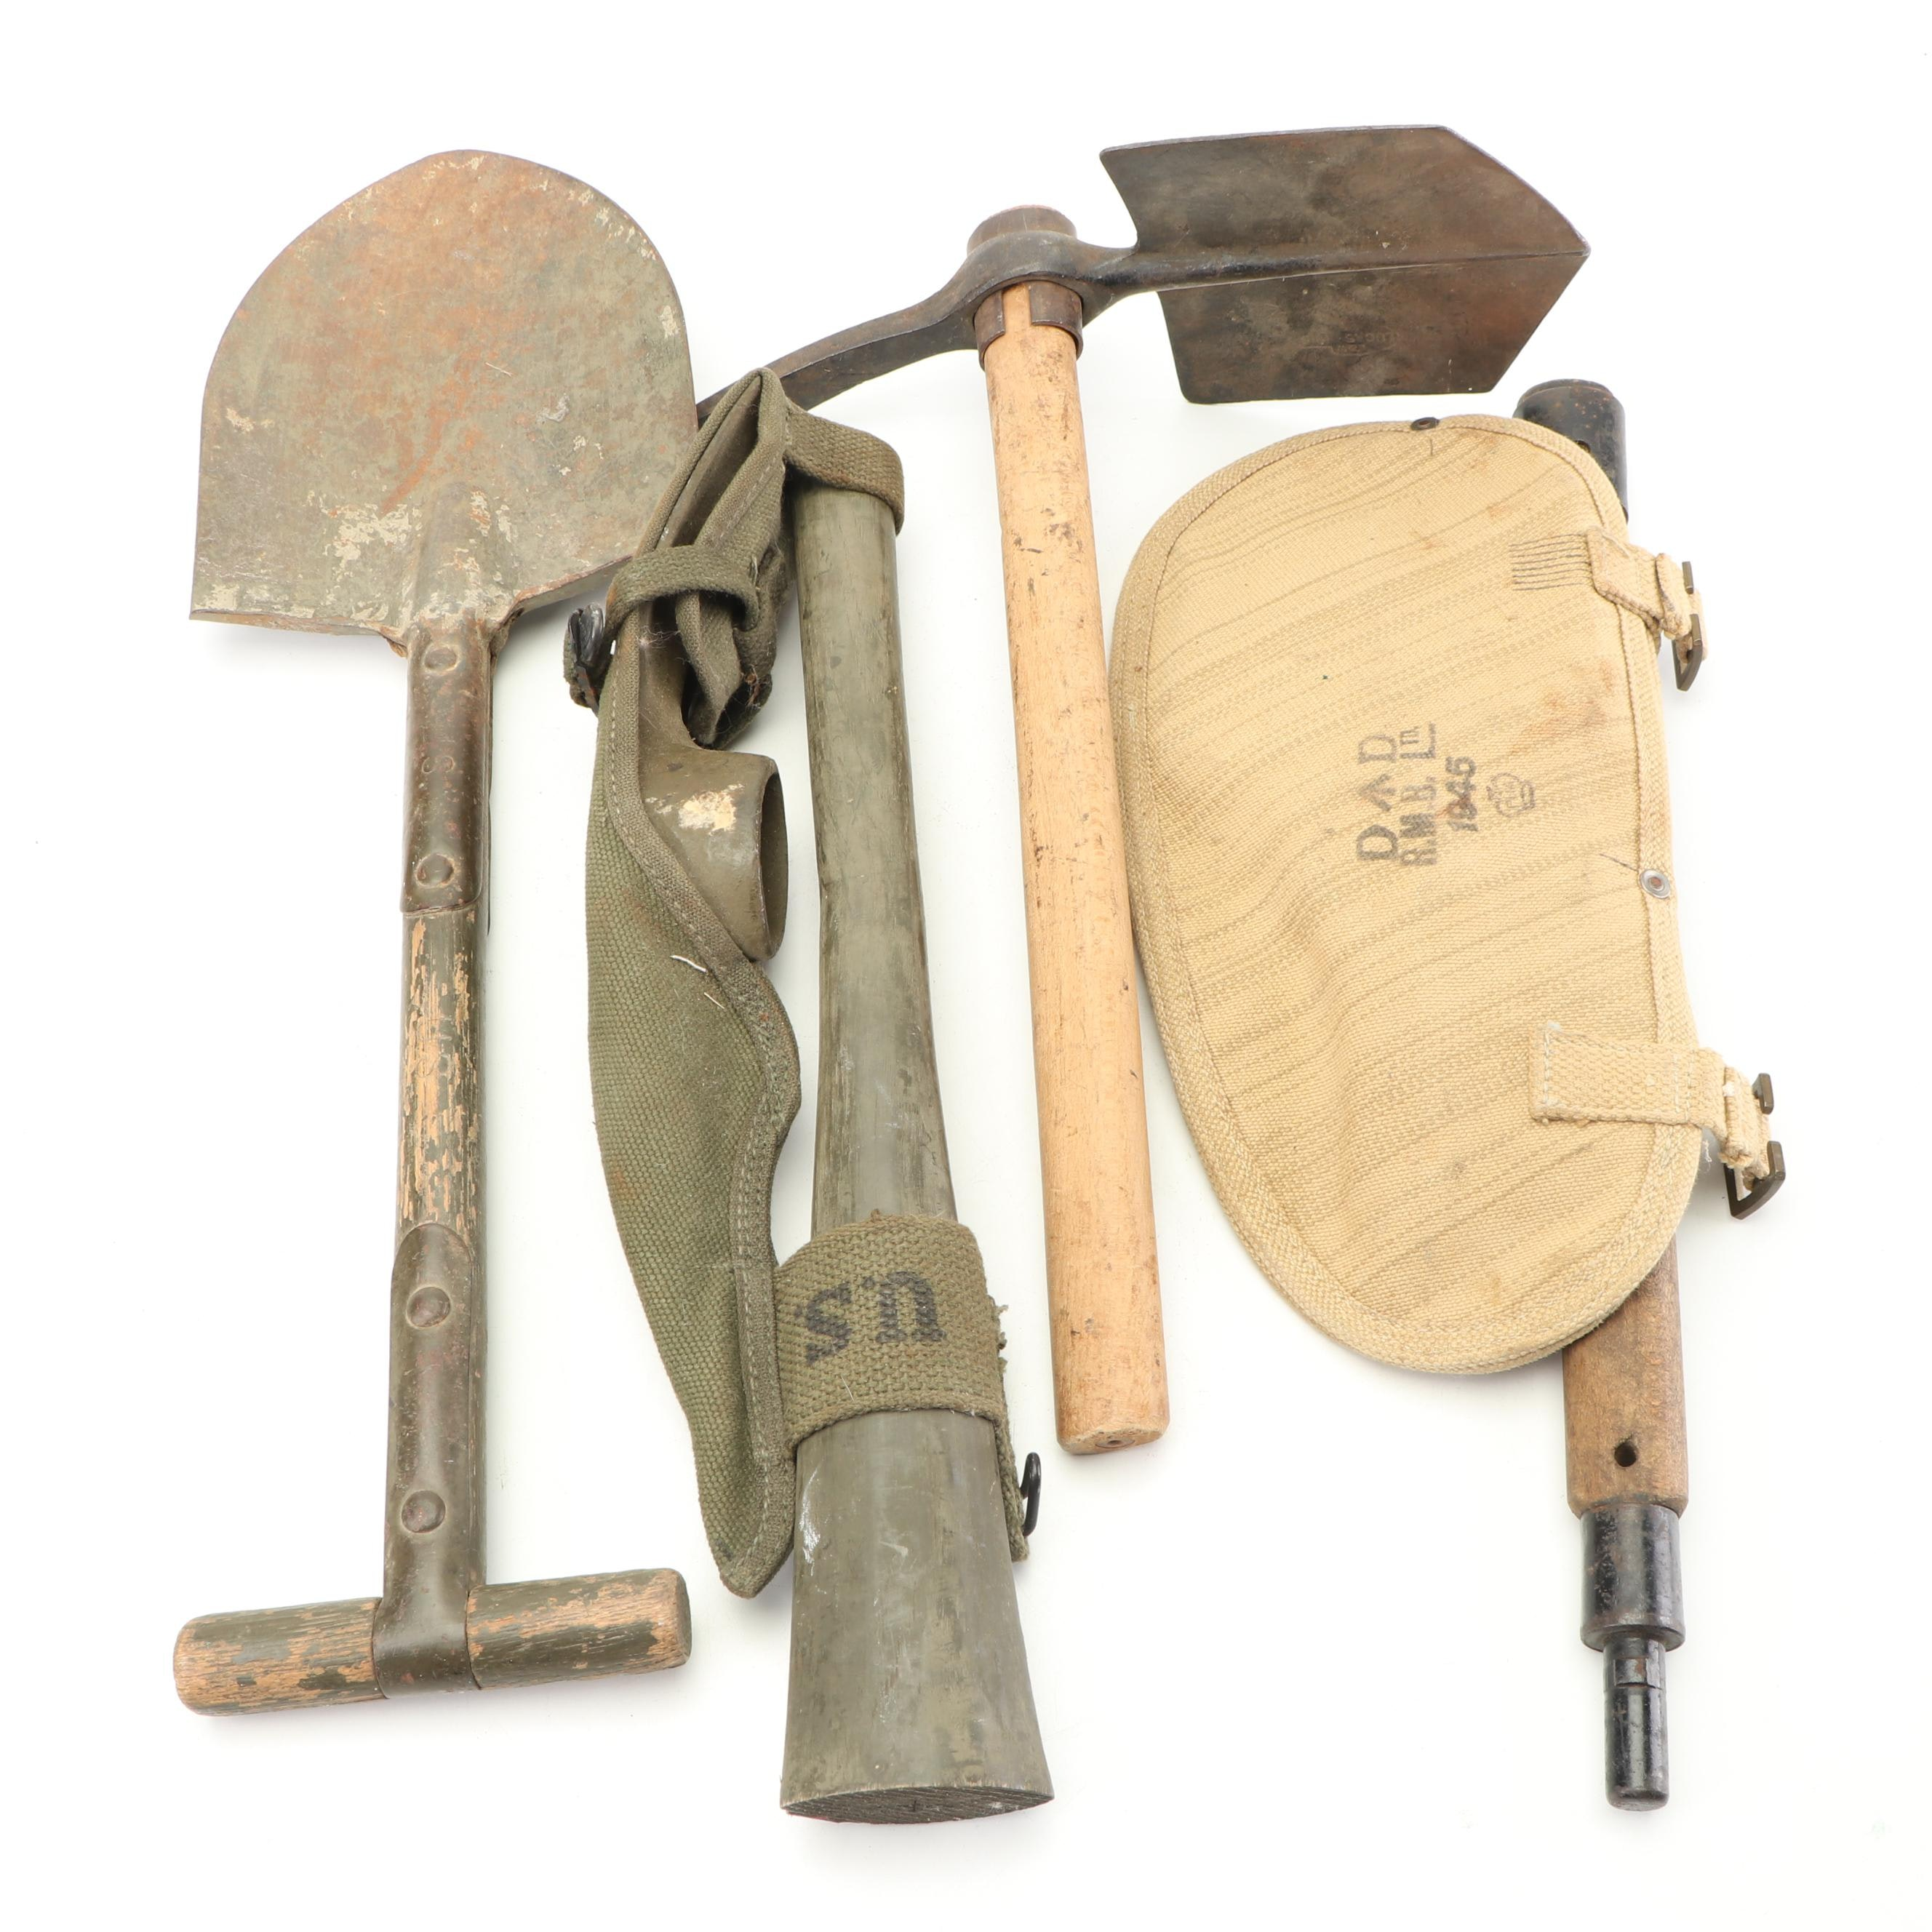 Military Pickaxe and Shovels, Early to Mid 20th Century